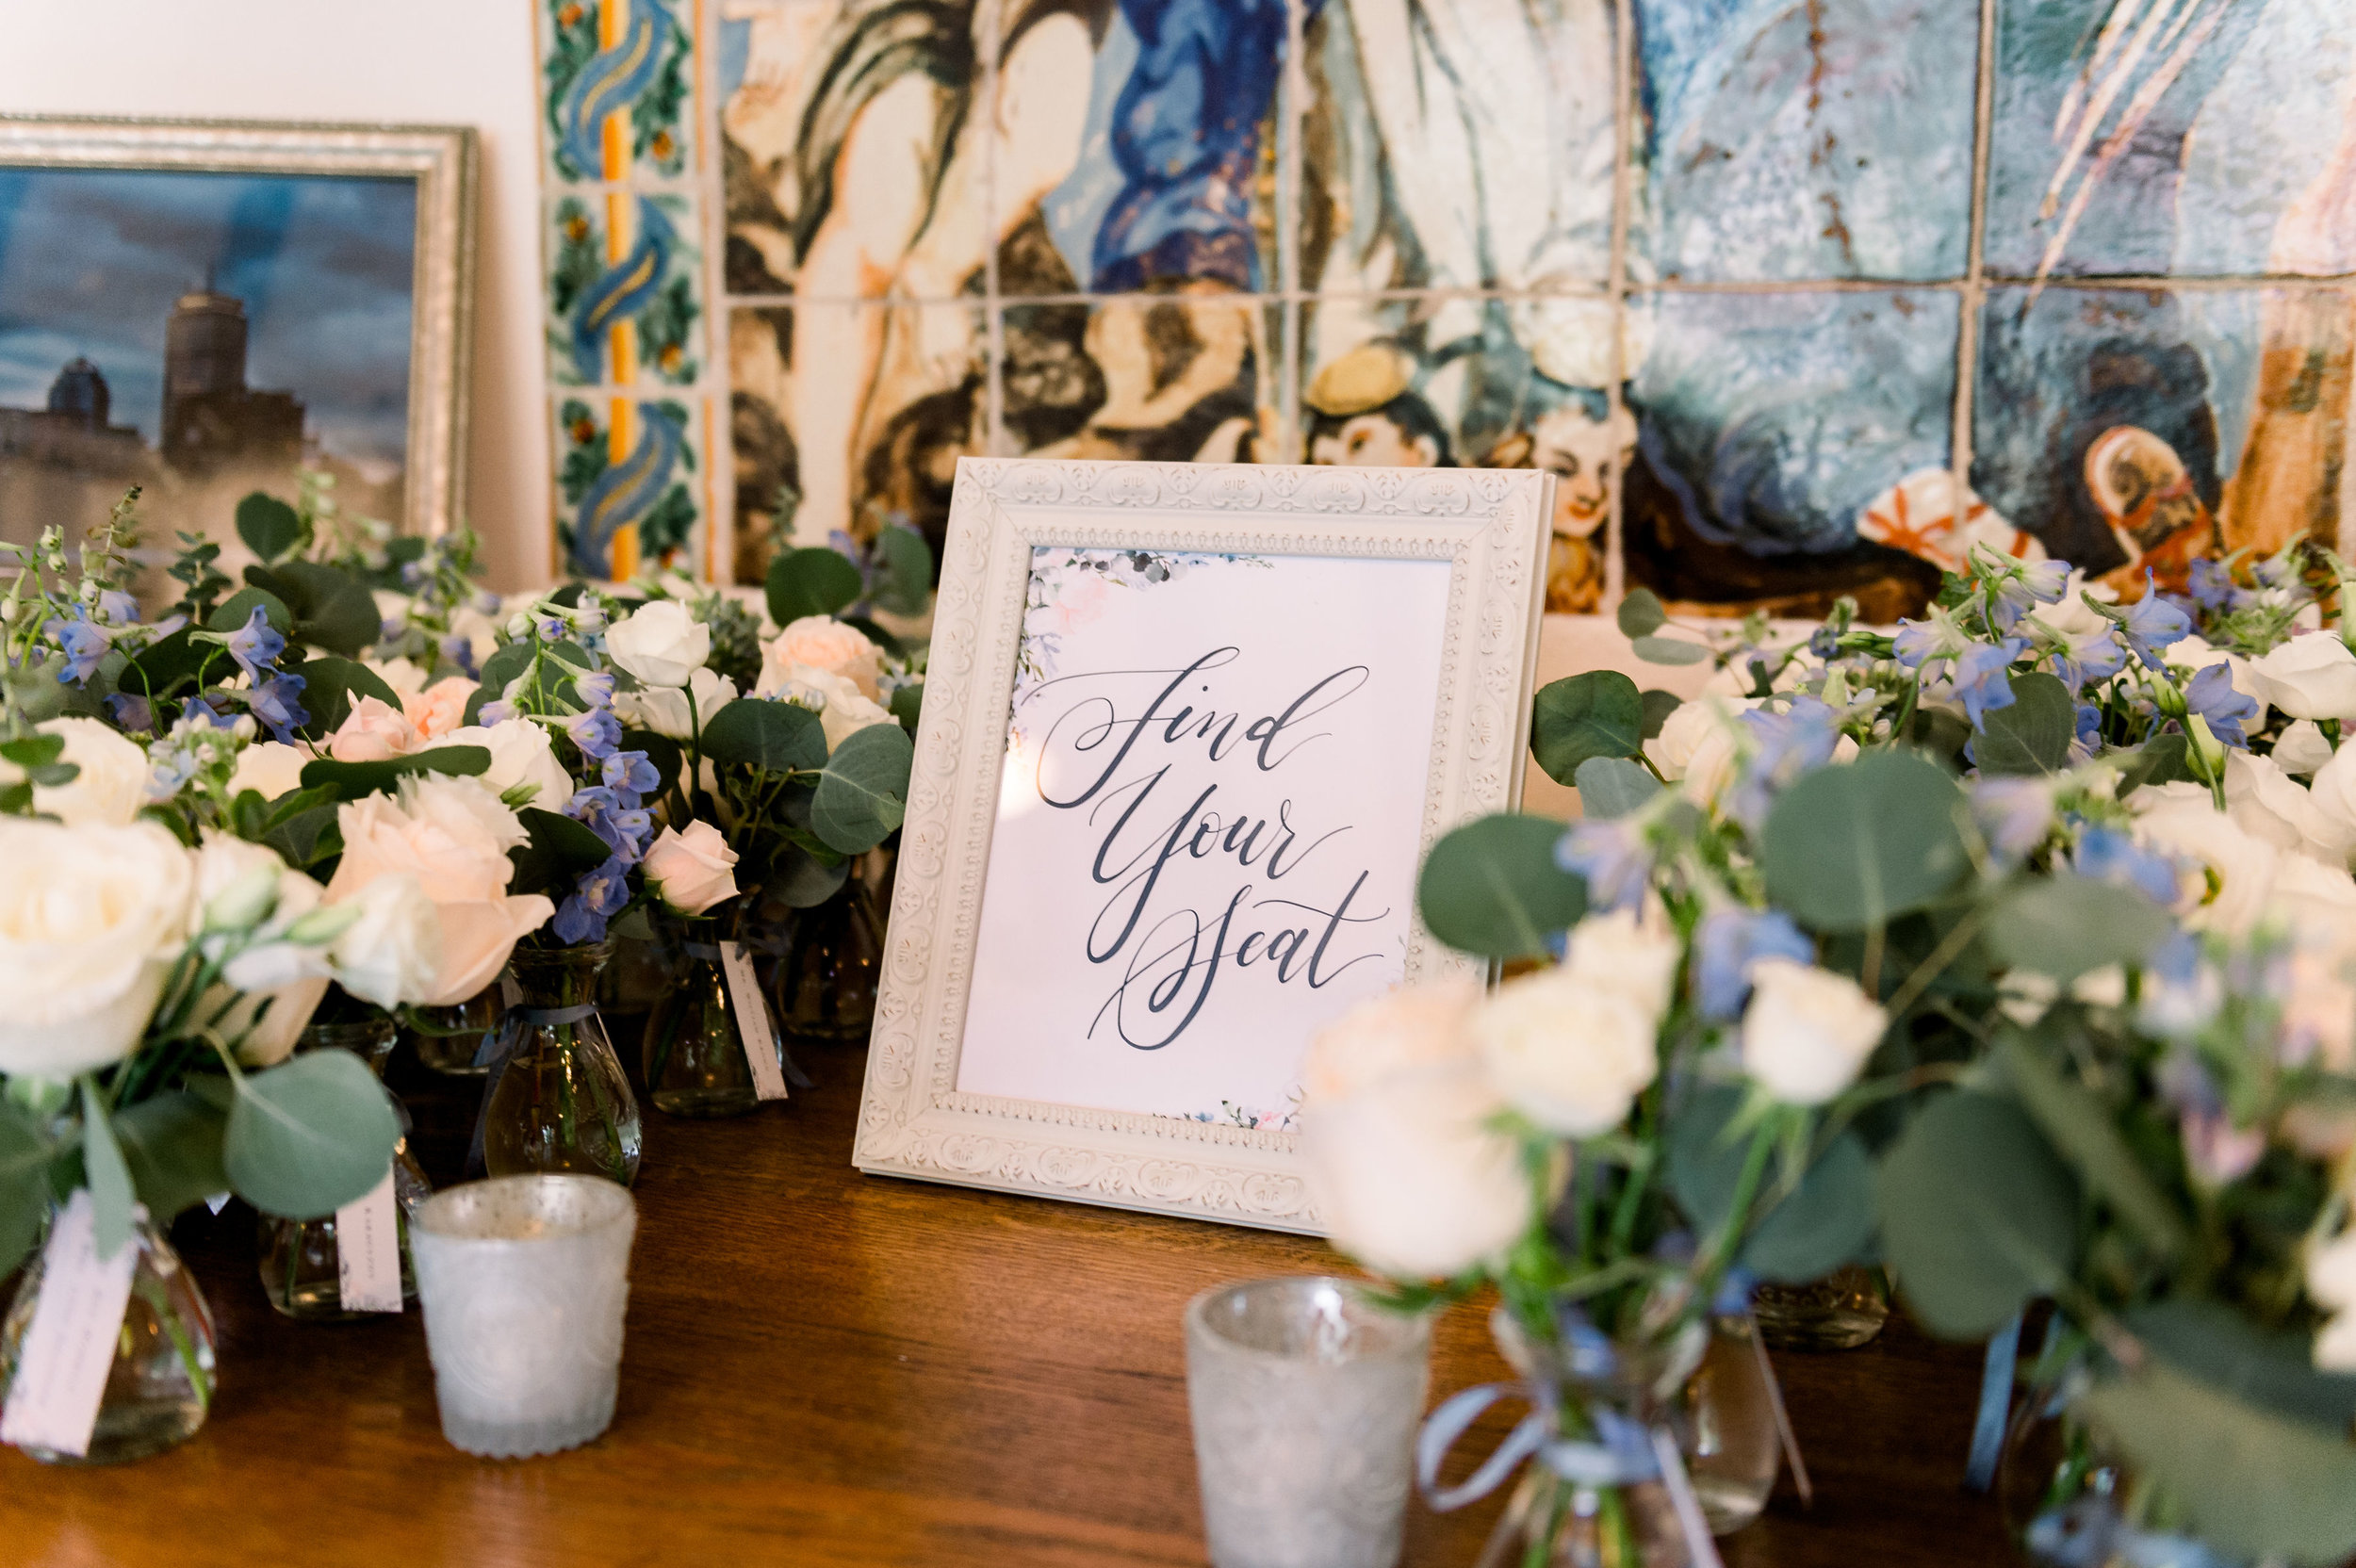 find your seat wedding watercolor sign